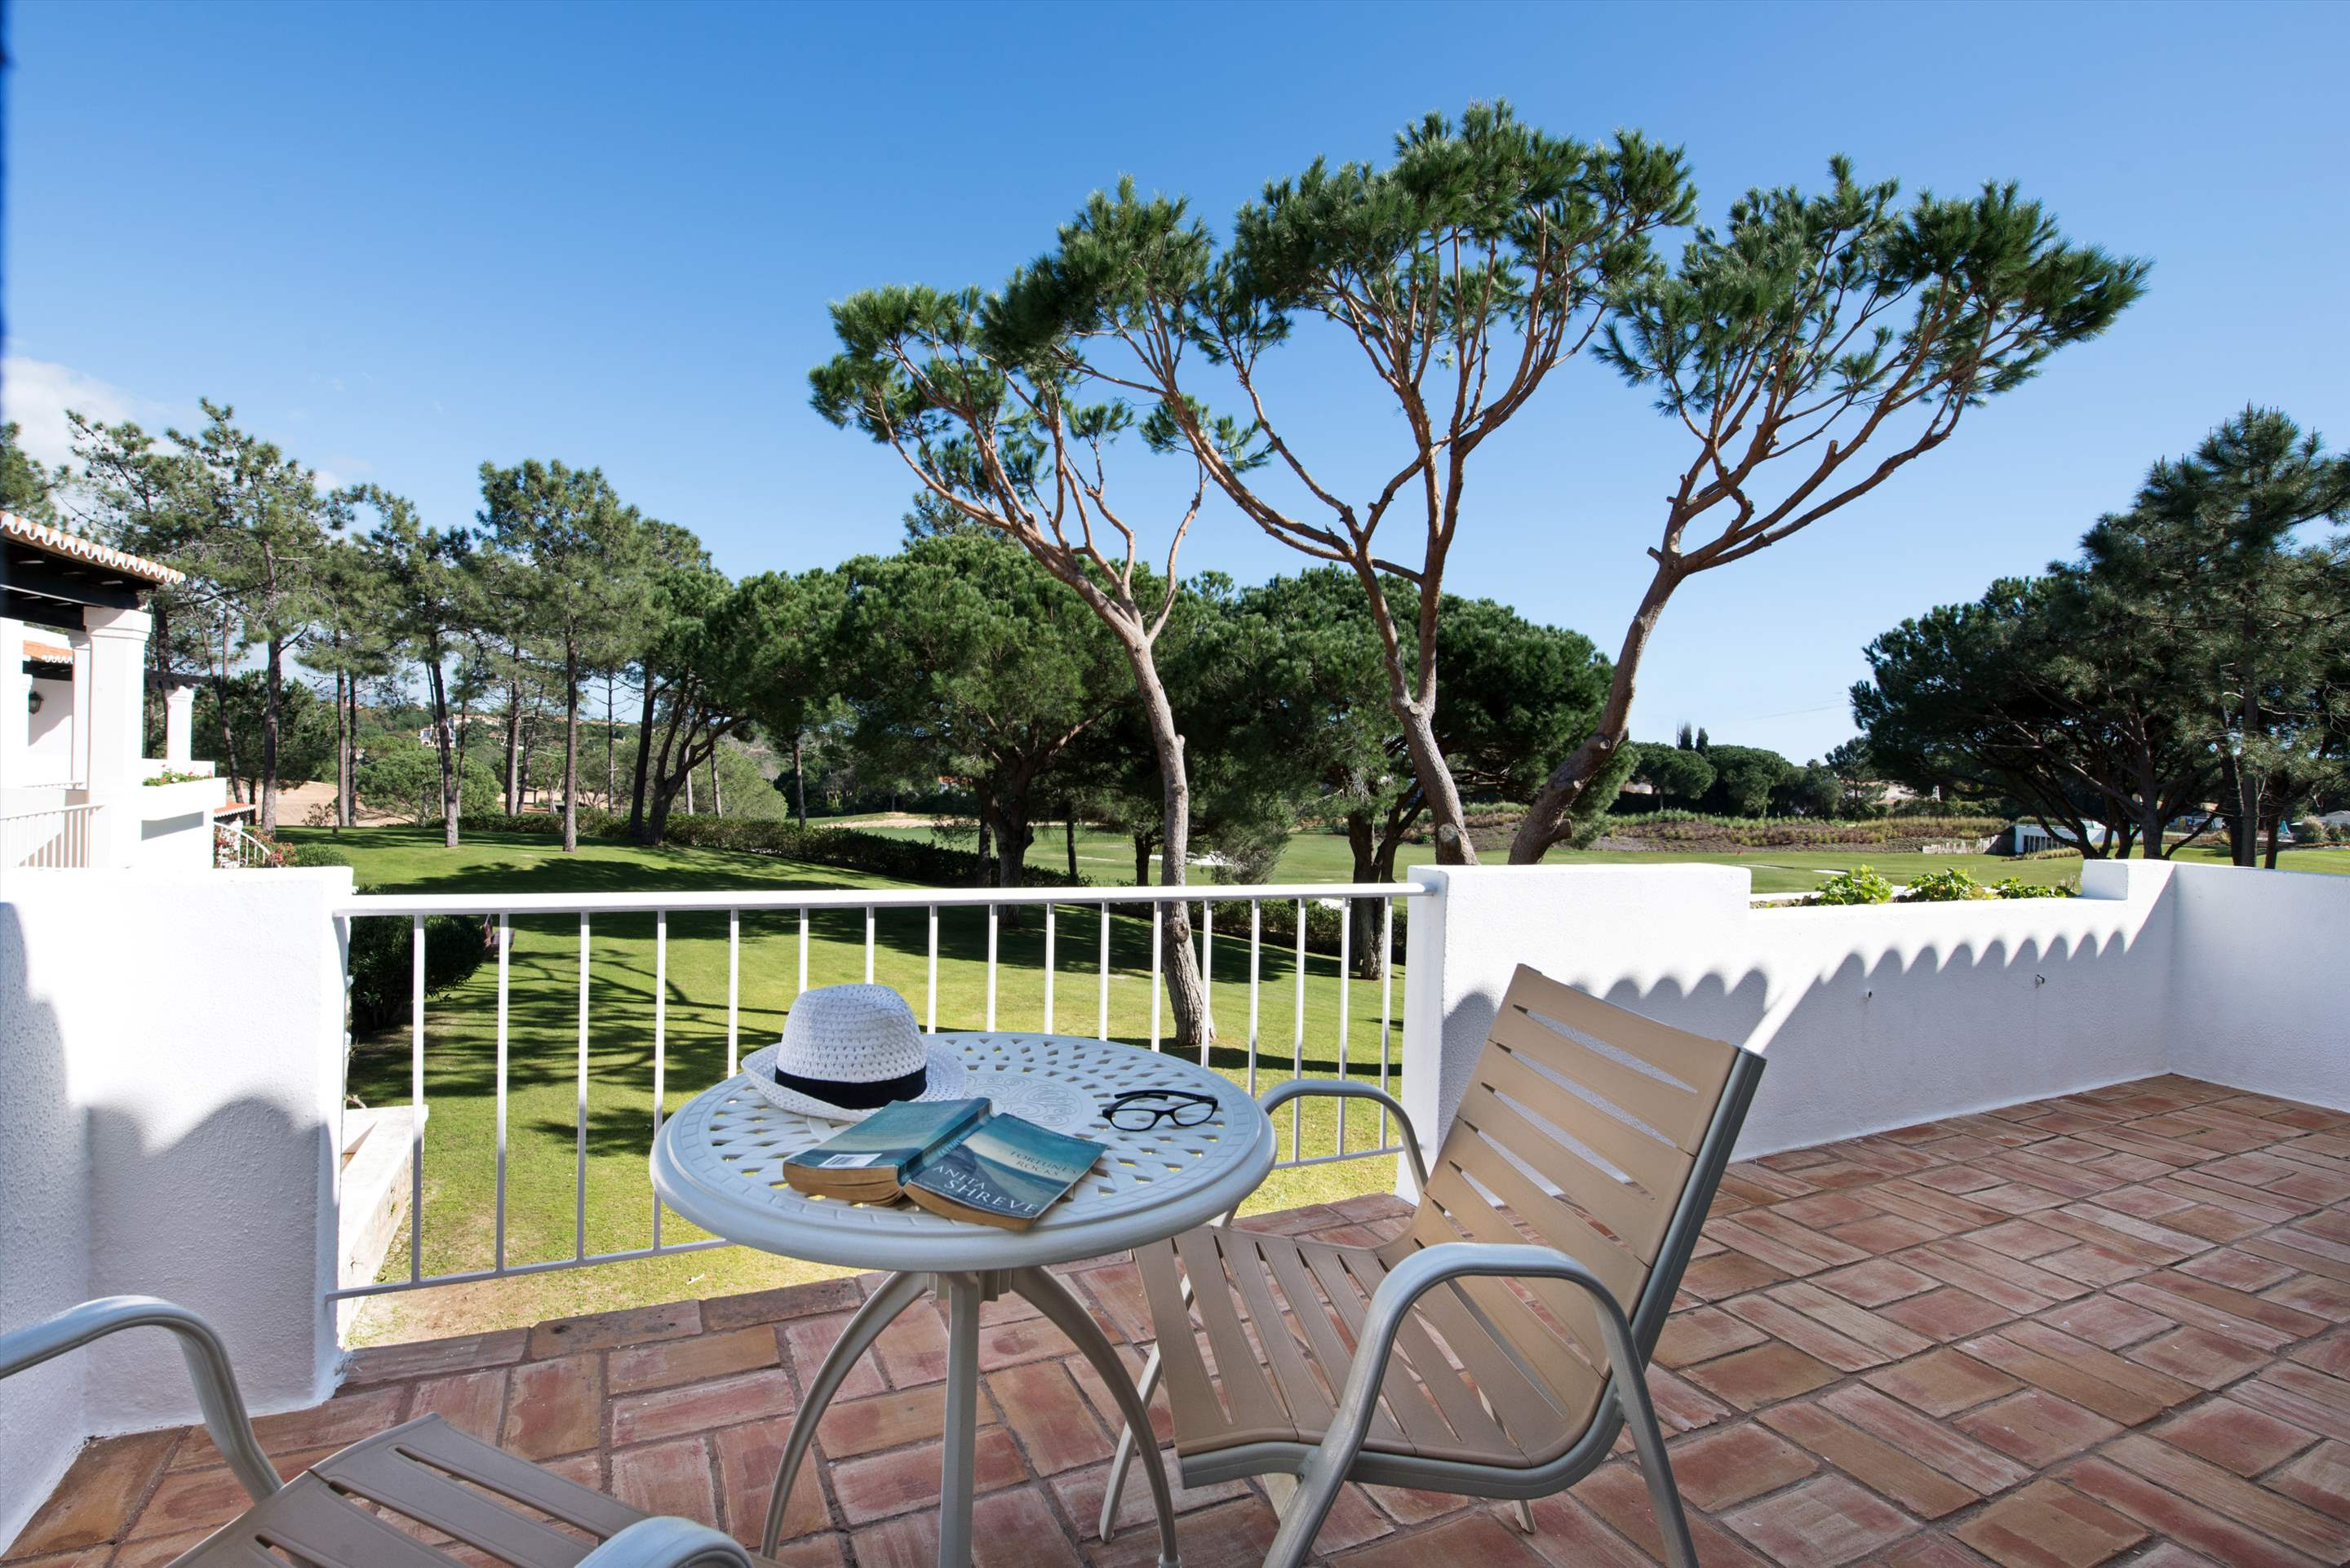 Four Seasons Country Club 2 bed, Superior - Saturday Arrival, 2 bedroom apartment in Four Seasons Country Club, Algarve Photo #9